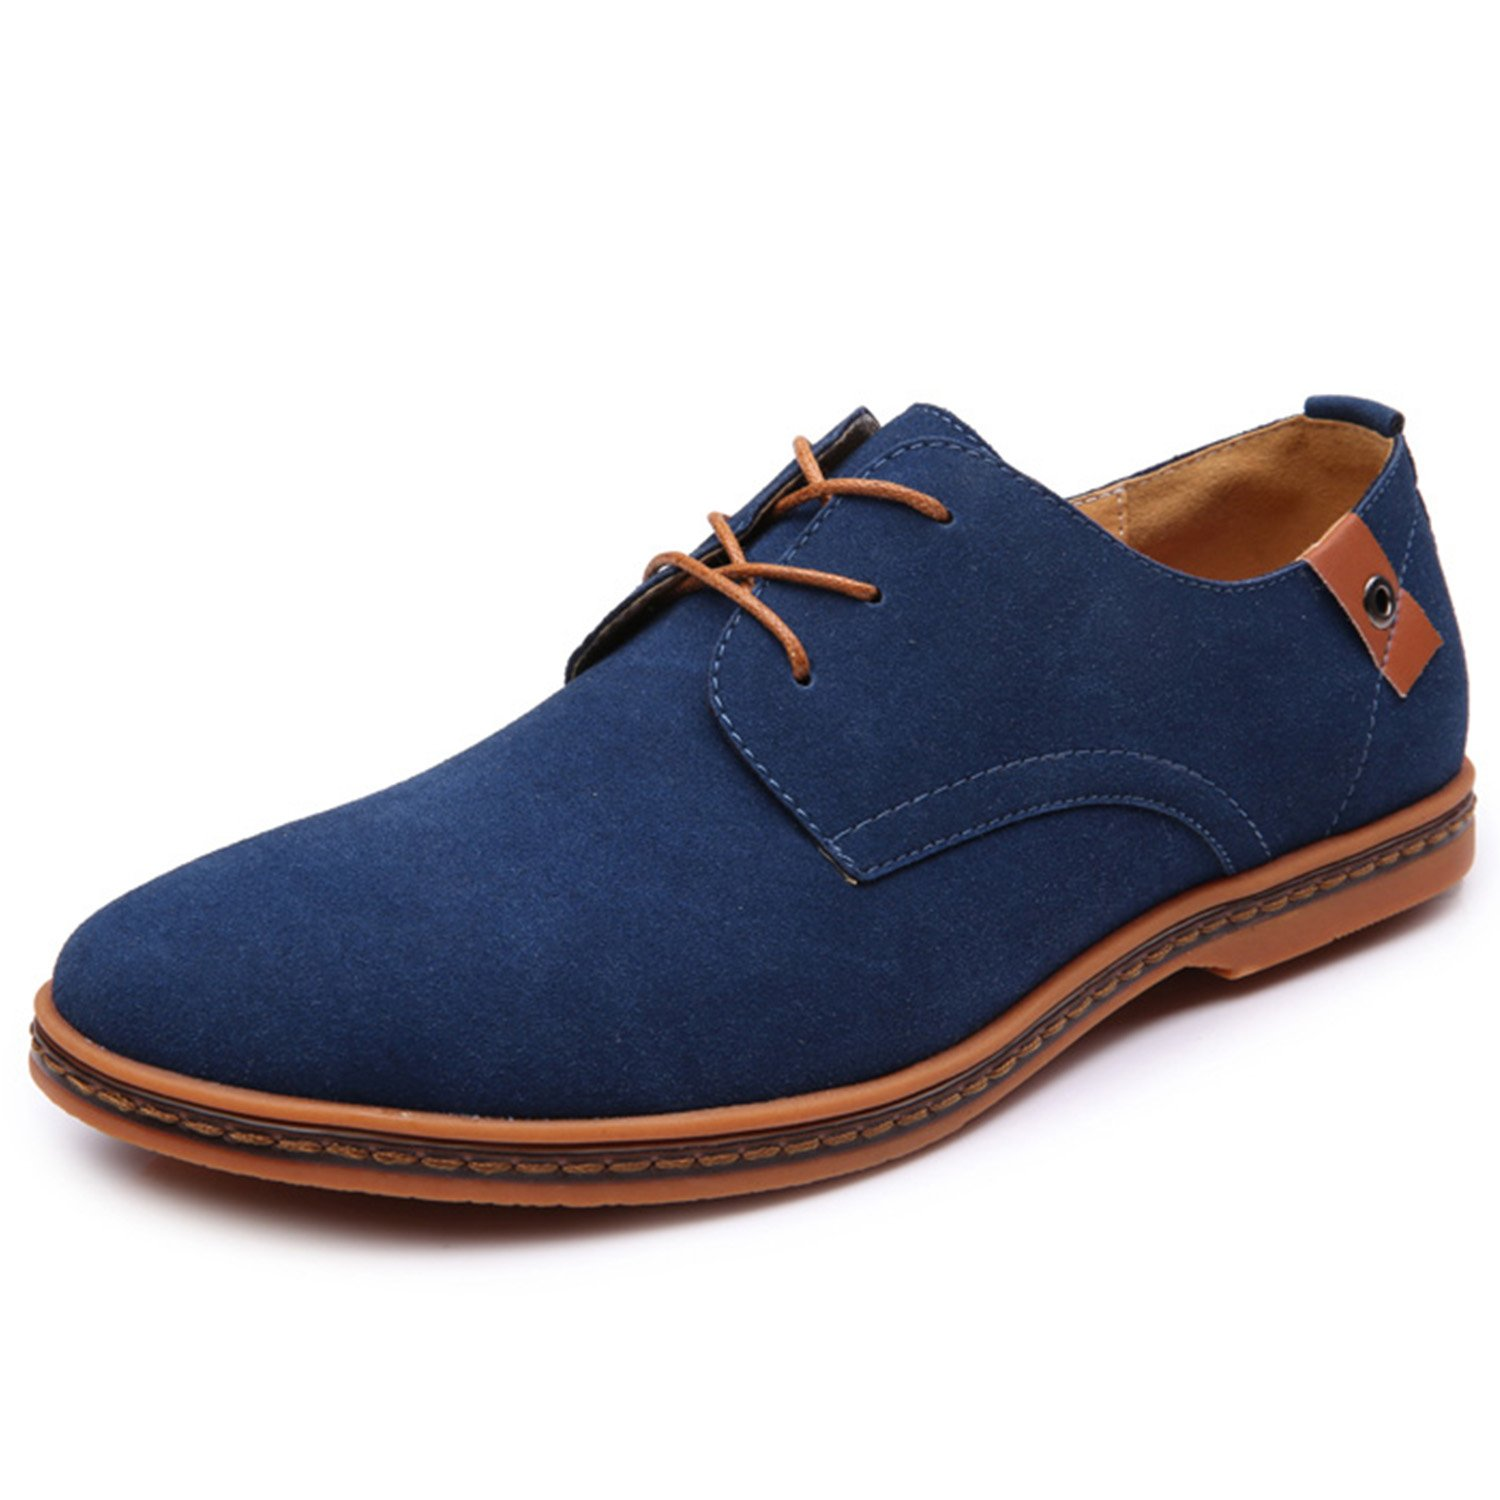 Mens Casual Suede Shoes Classic Leather Business Office Oxford Dress Shoes(US 9.5, Blue)